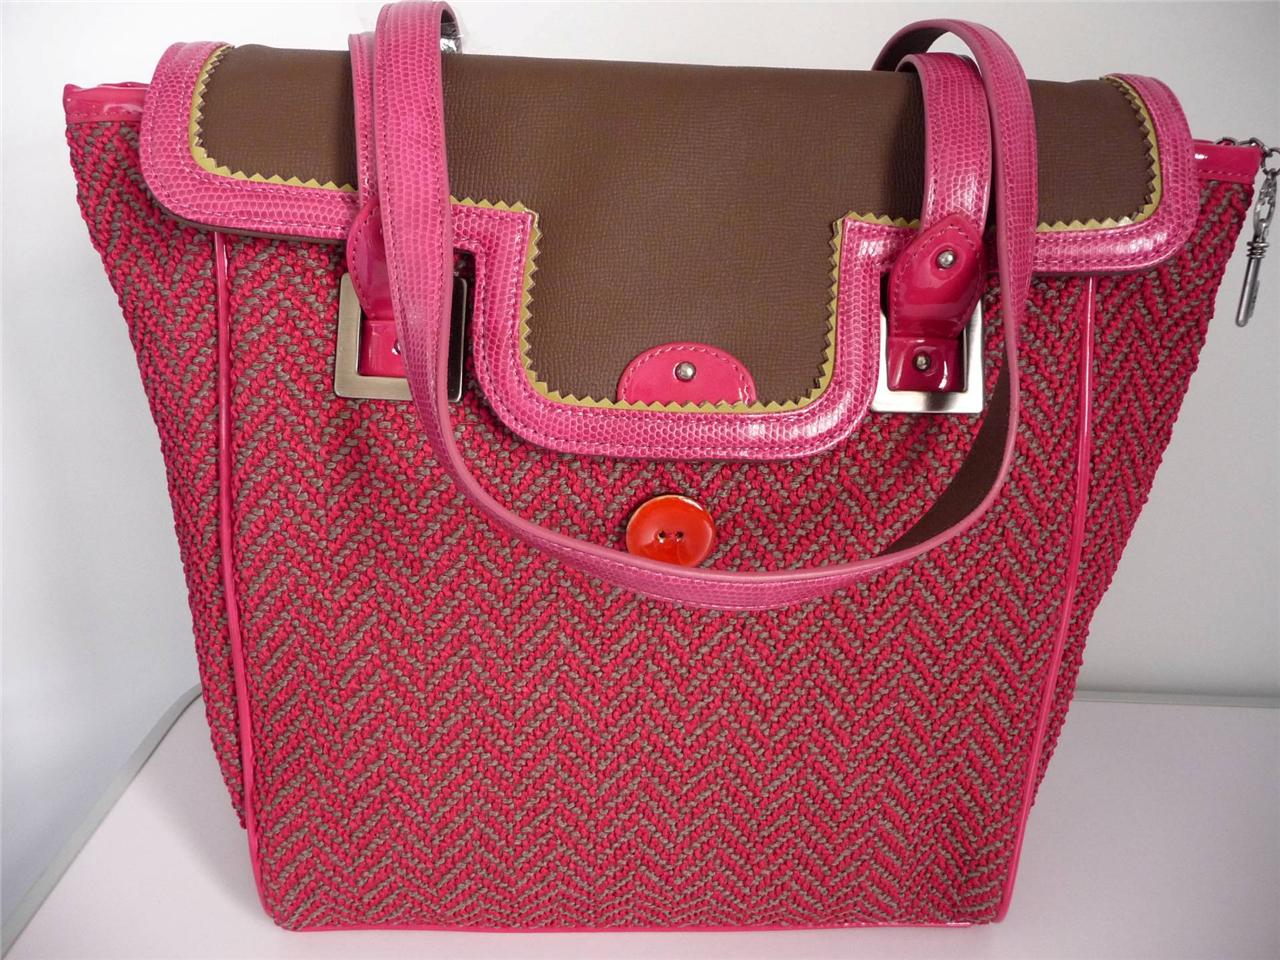 NWT-STUNNING-SPENCER-RUTHERFORD-CASSIDY-TOTE-BAG-GREAT-GIFT